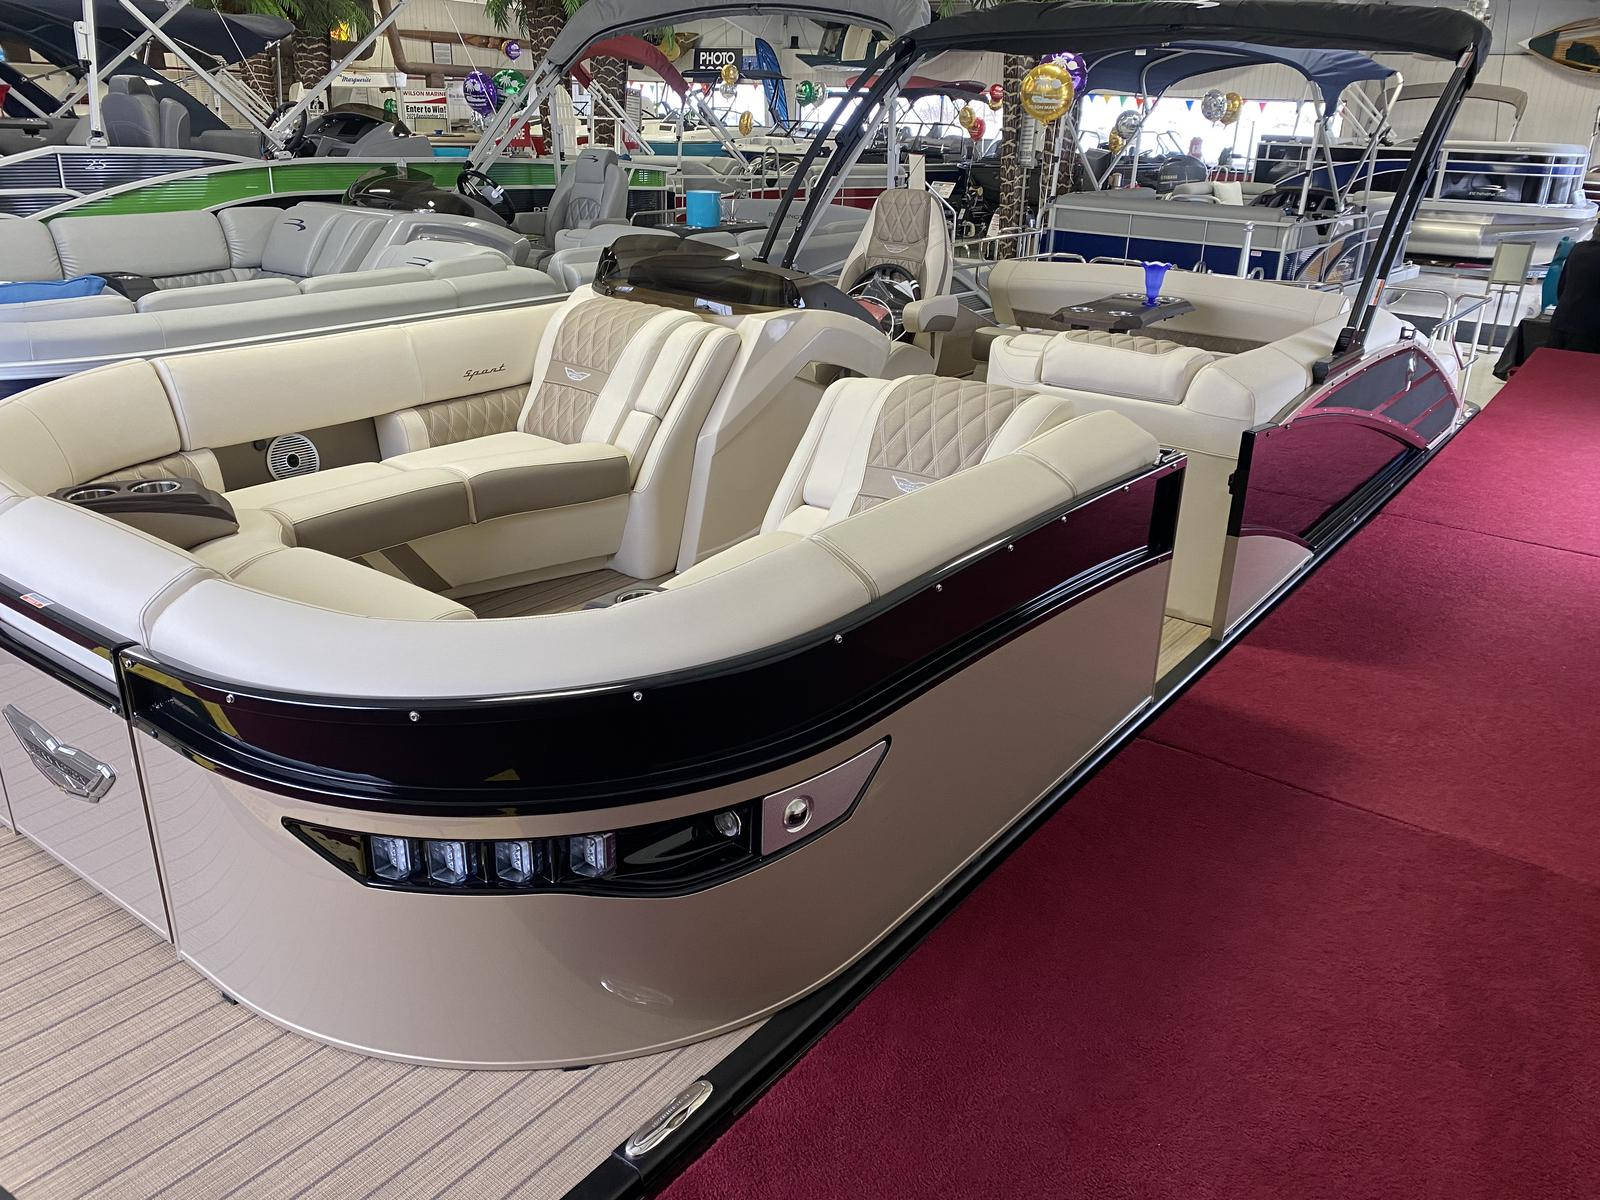 2021 Bennington boat for sale, model of the boat is 23 RXSB & Image # 5 of 7